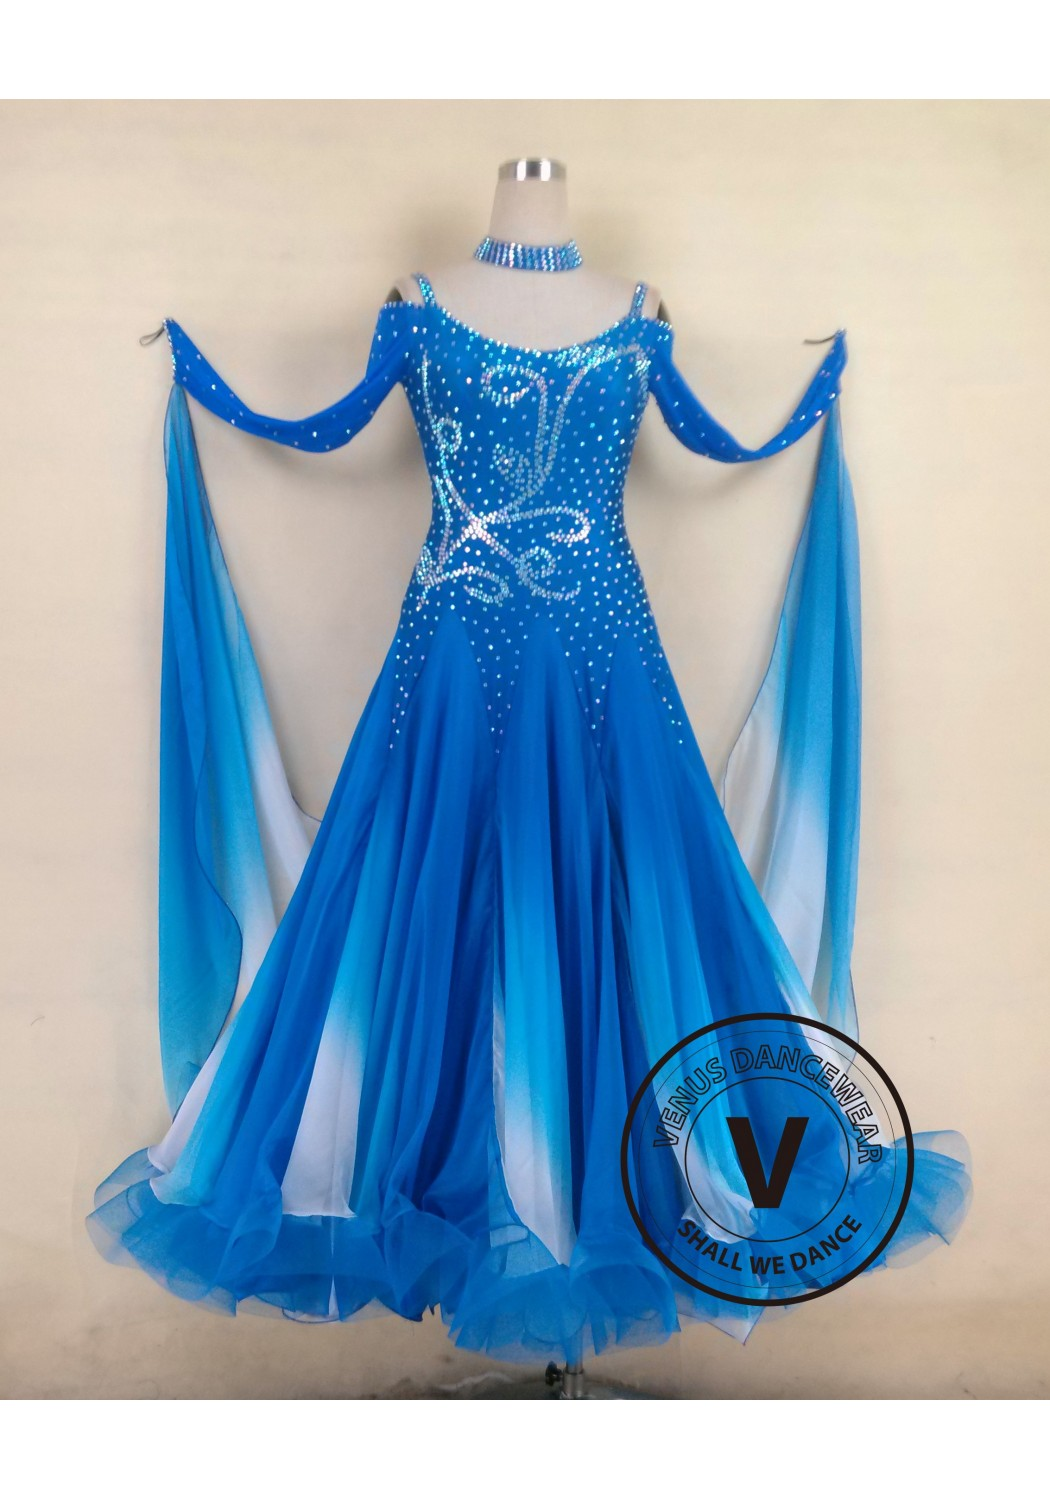 Standard Competition Ballroom Dress US44